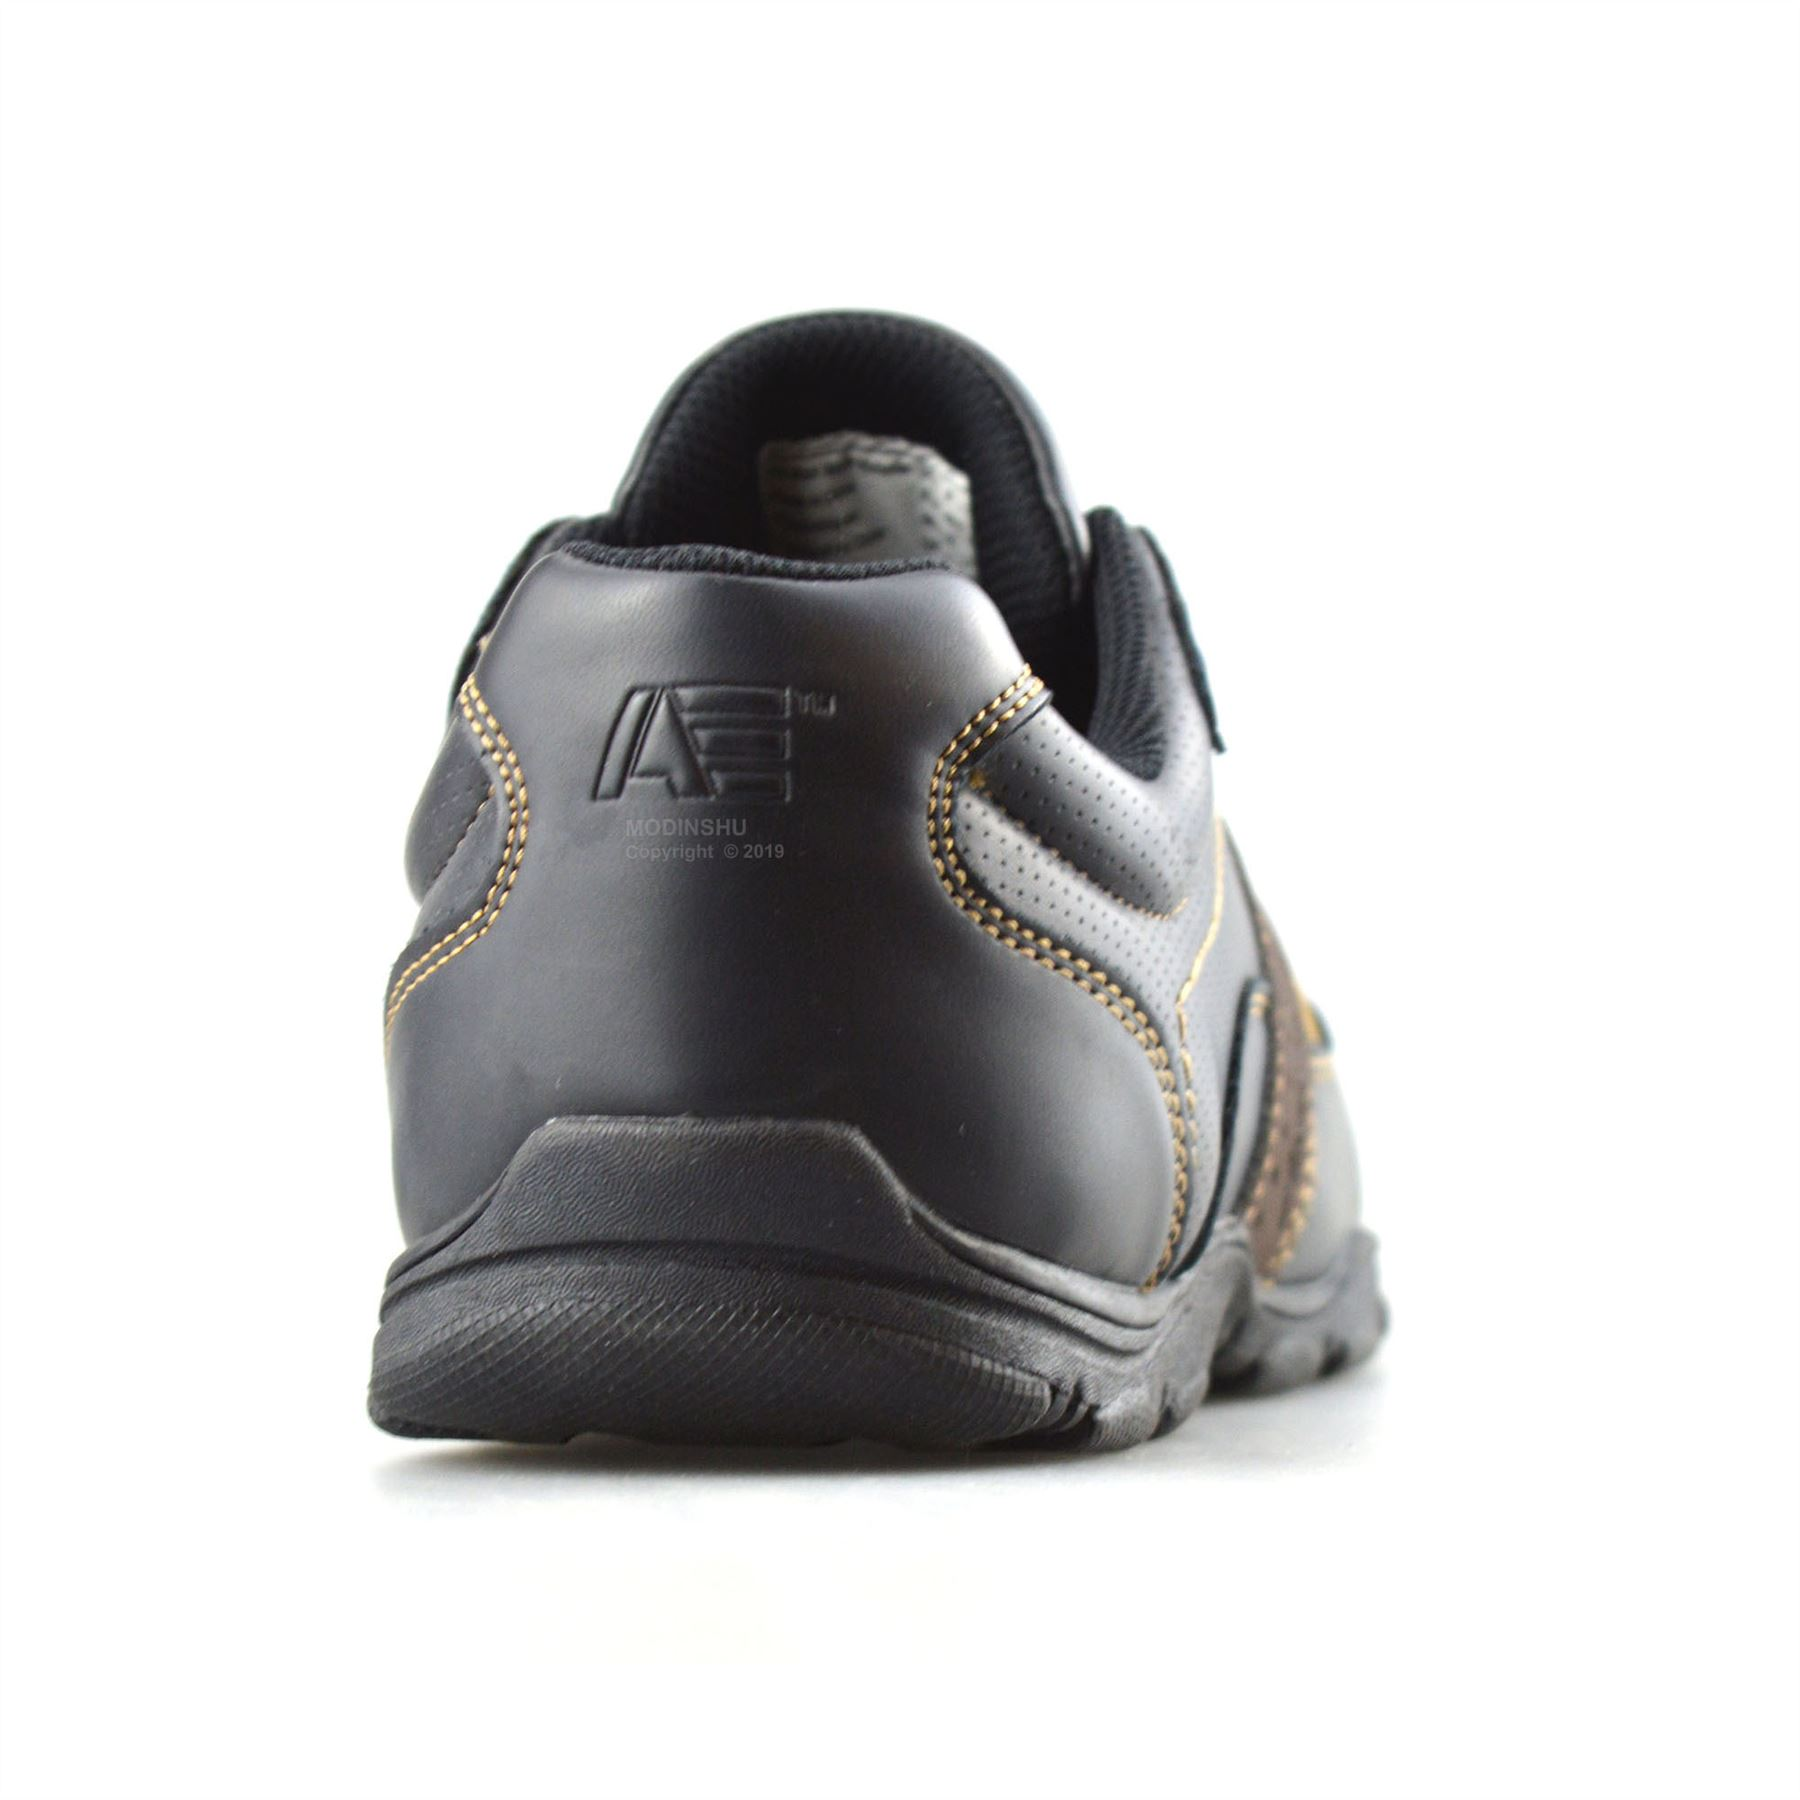 Mens-Casual-Memory-Foam-Walking-Hiking-Moccasin-Driving-Boat-Trainers-Shoes-Size thumbnail 11